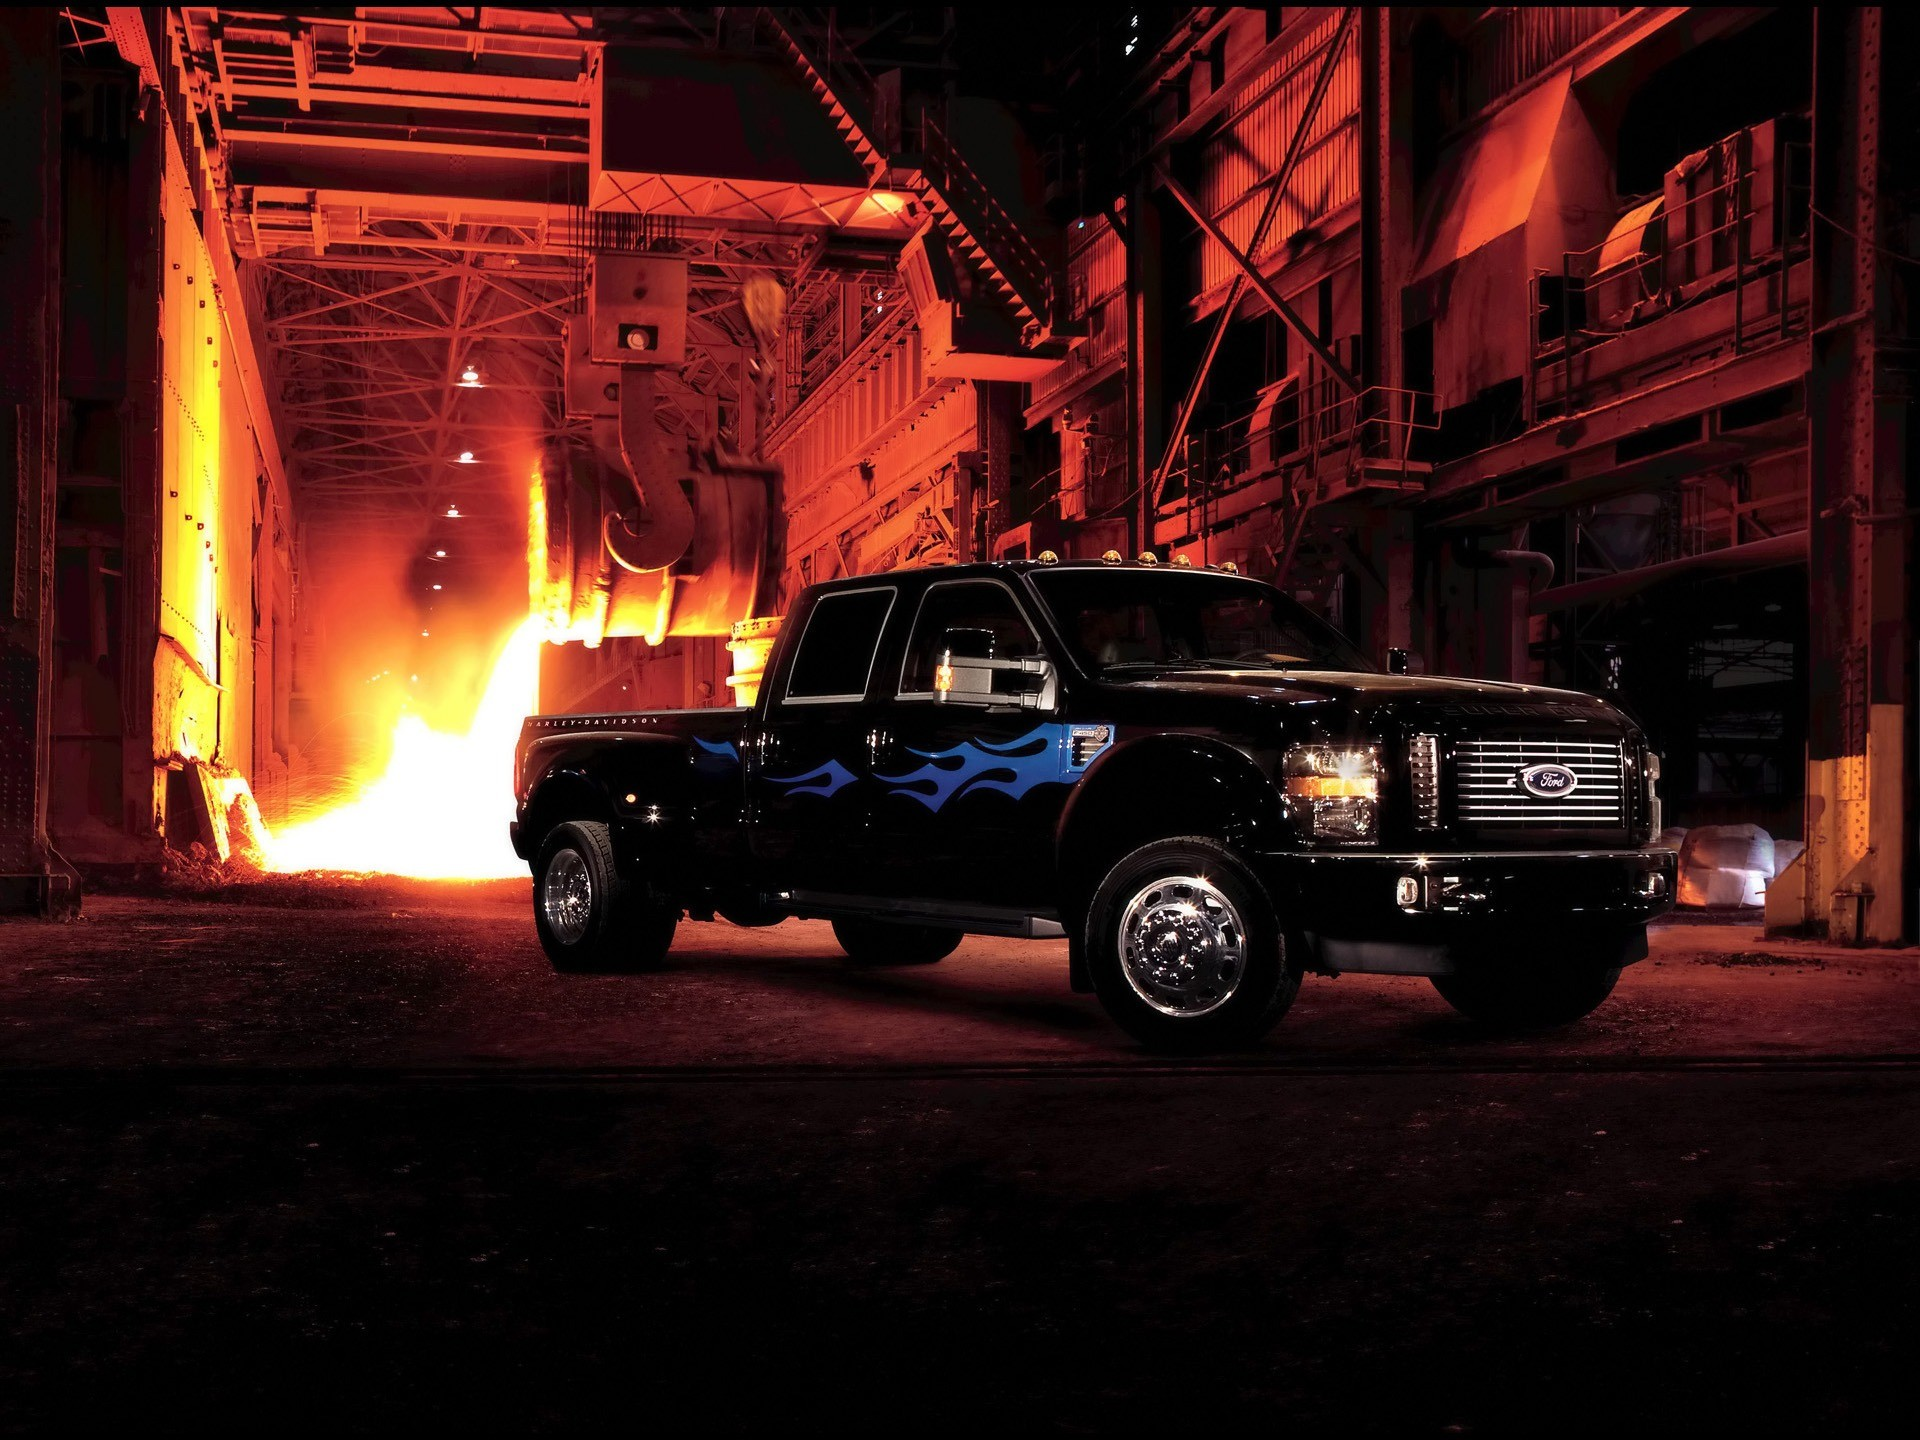 1920x1440 Ford F450 Super Duty Harley Davidson Wallpaper Ford Cars